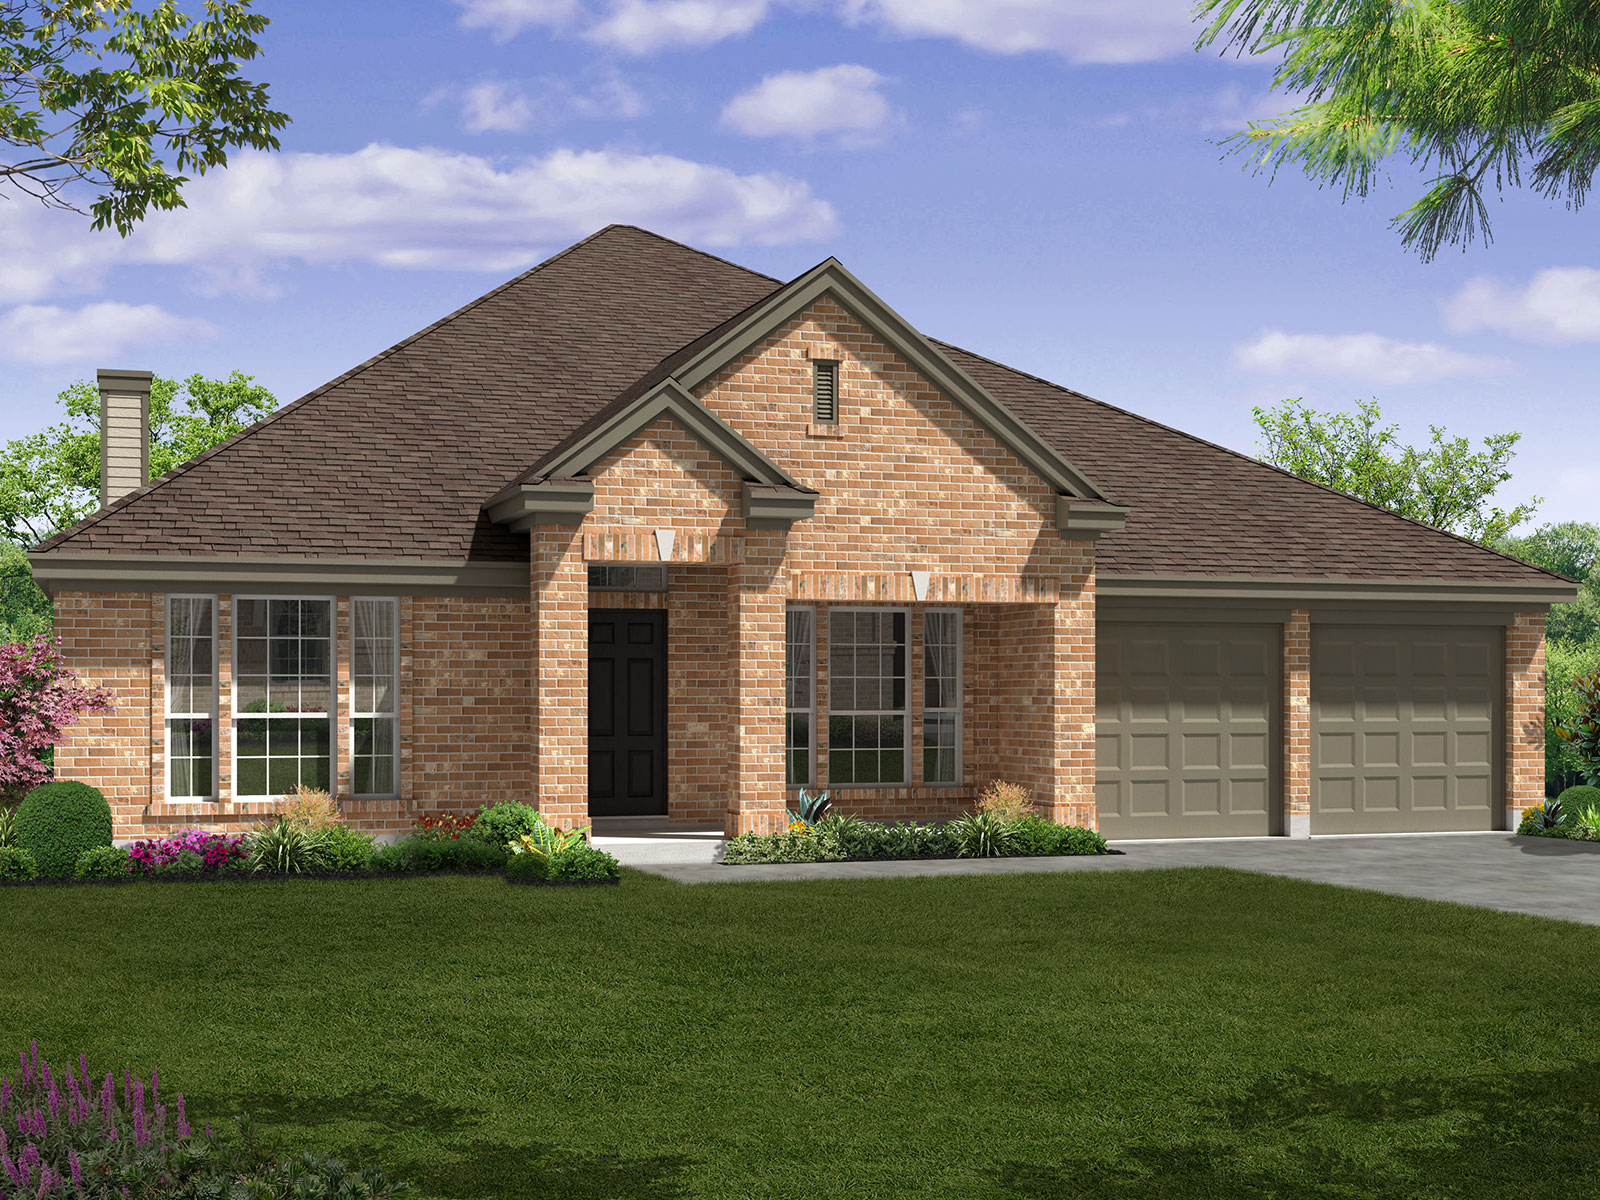 The Goliad 5882 Model 4br 2ba Homes For Sale In